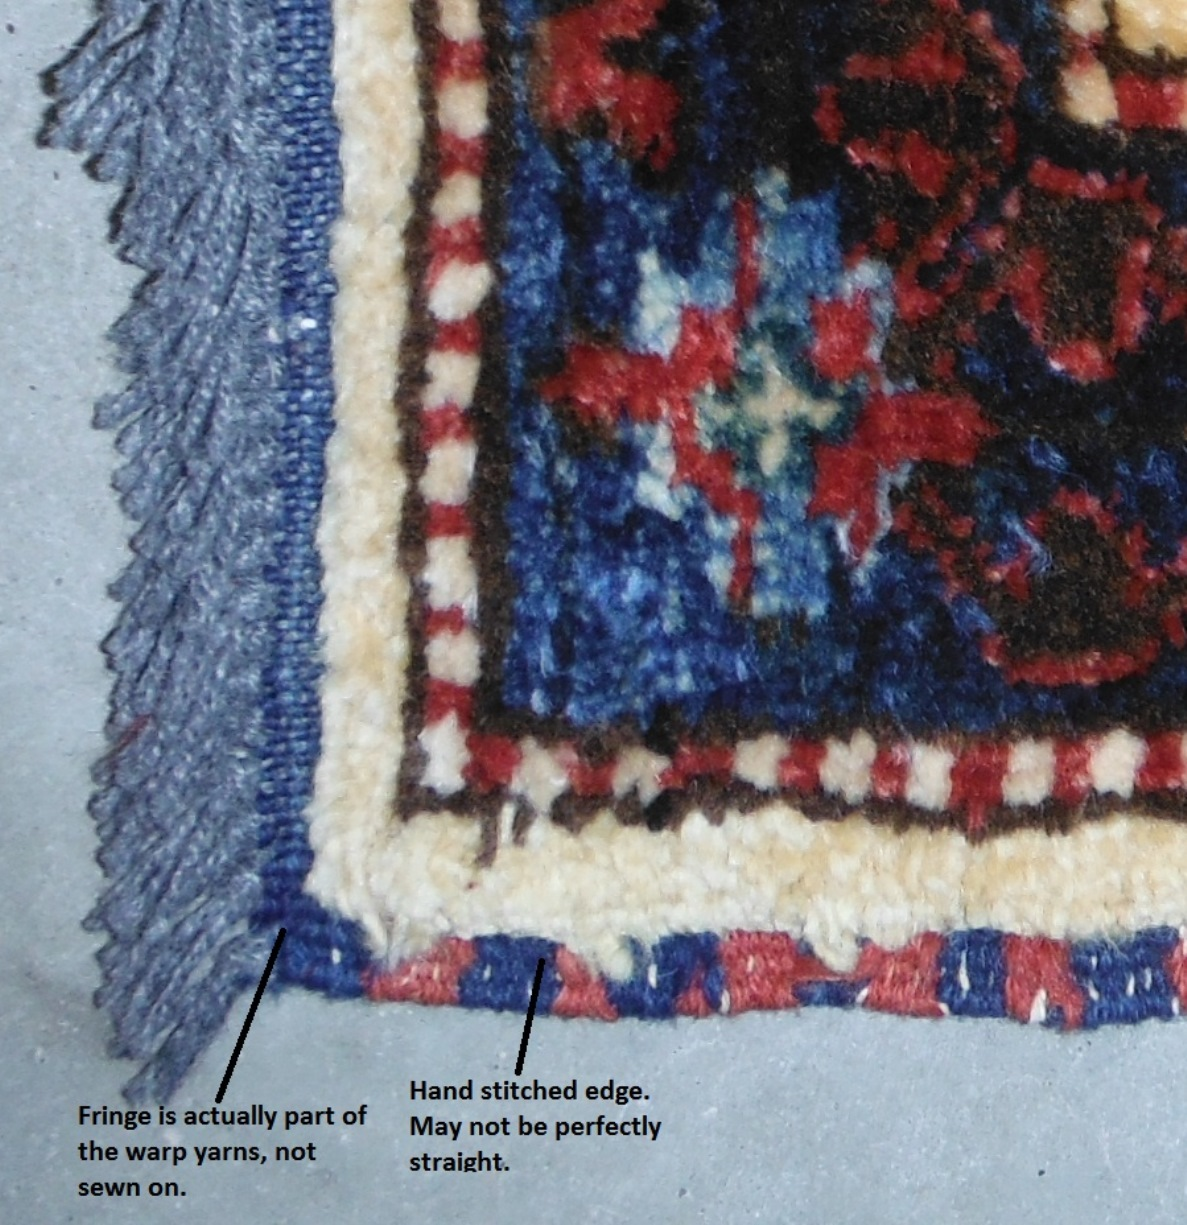 How To Tell The Difference Between A Hand-Knotted And